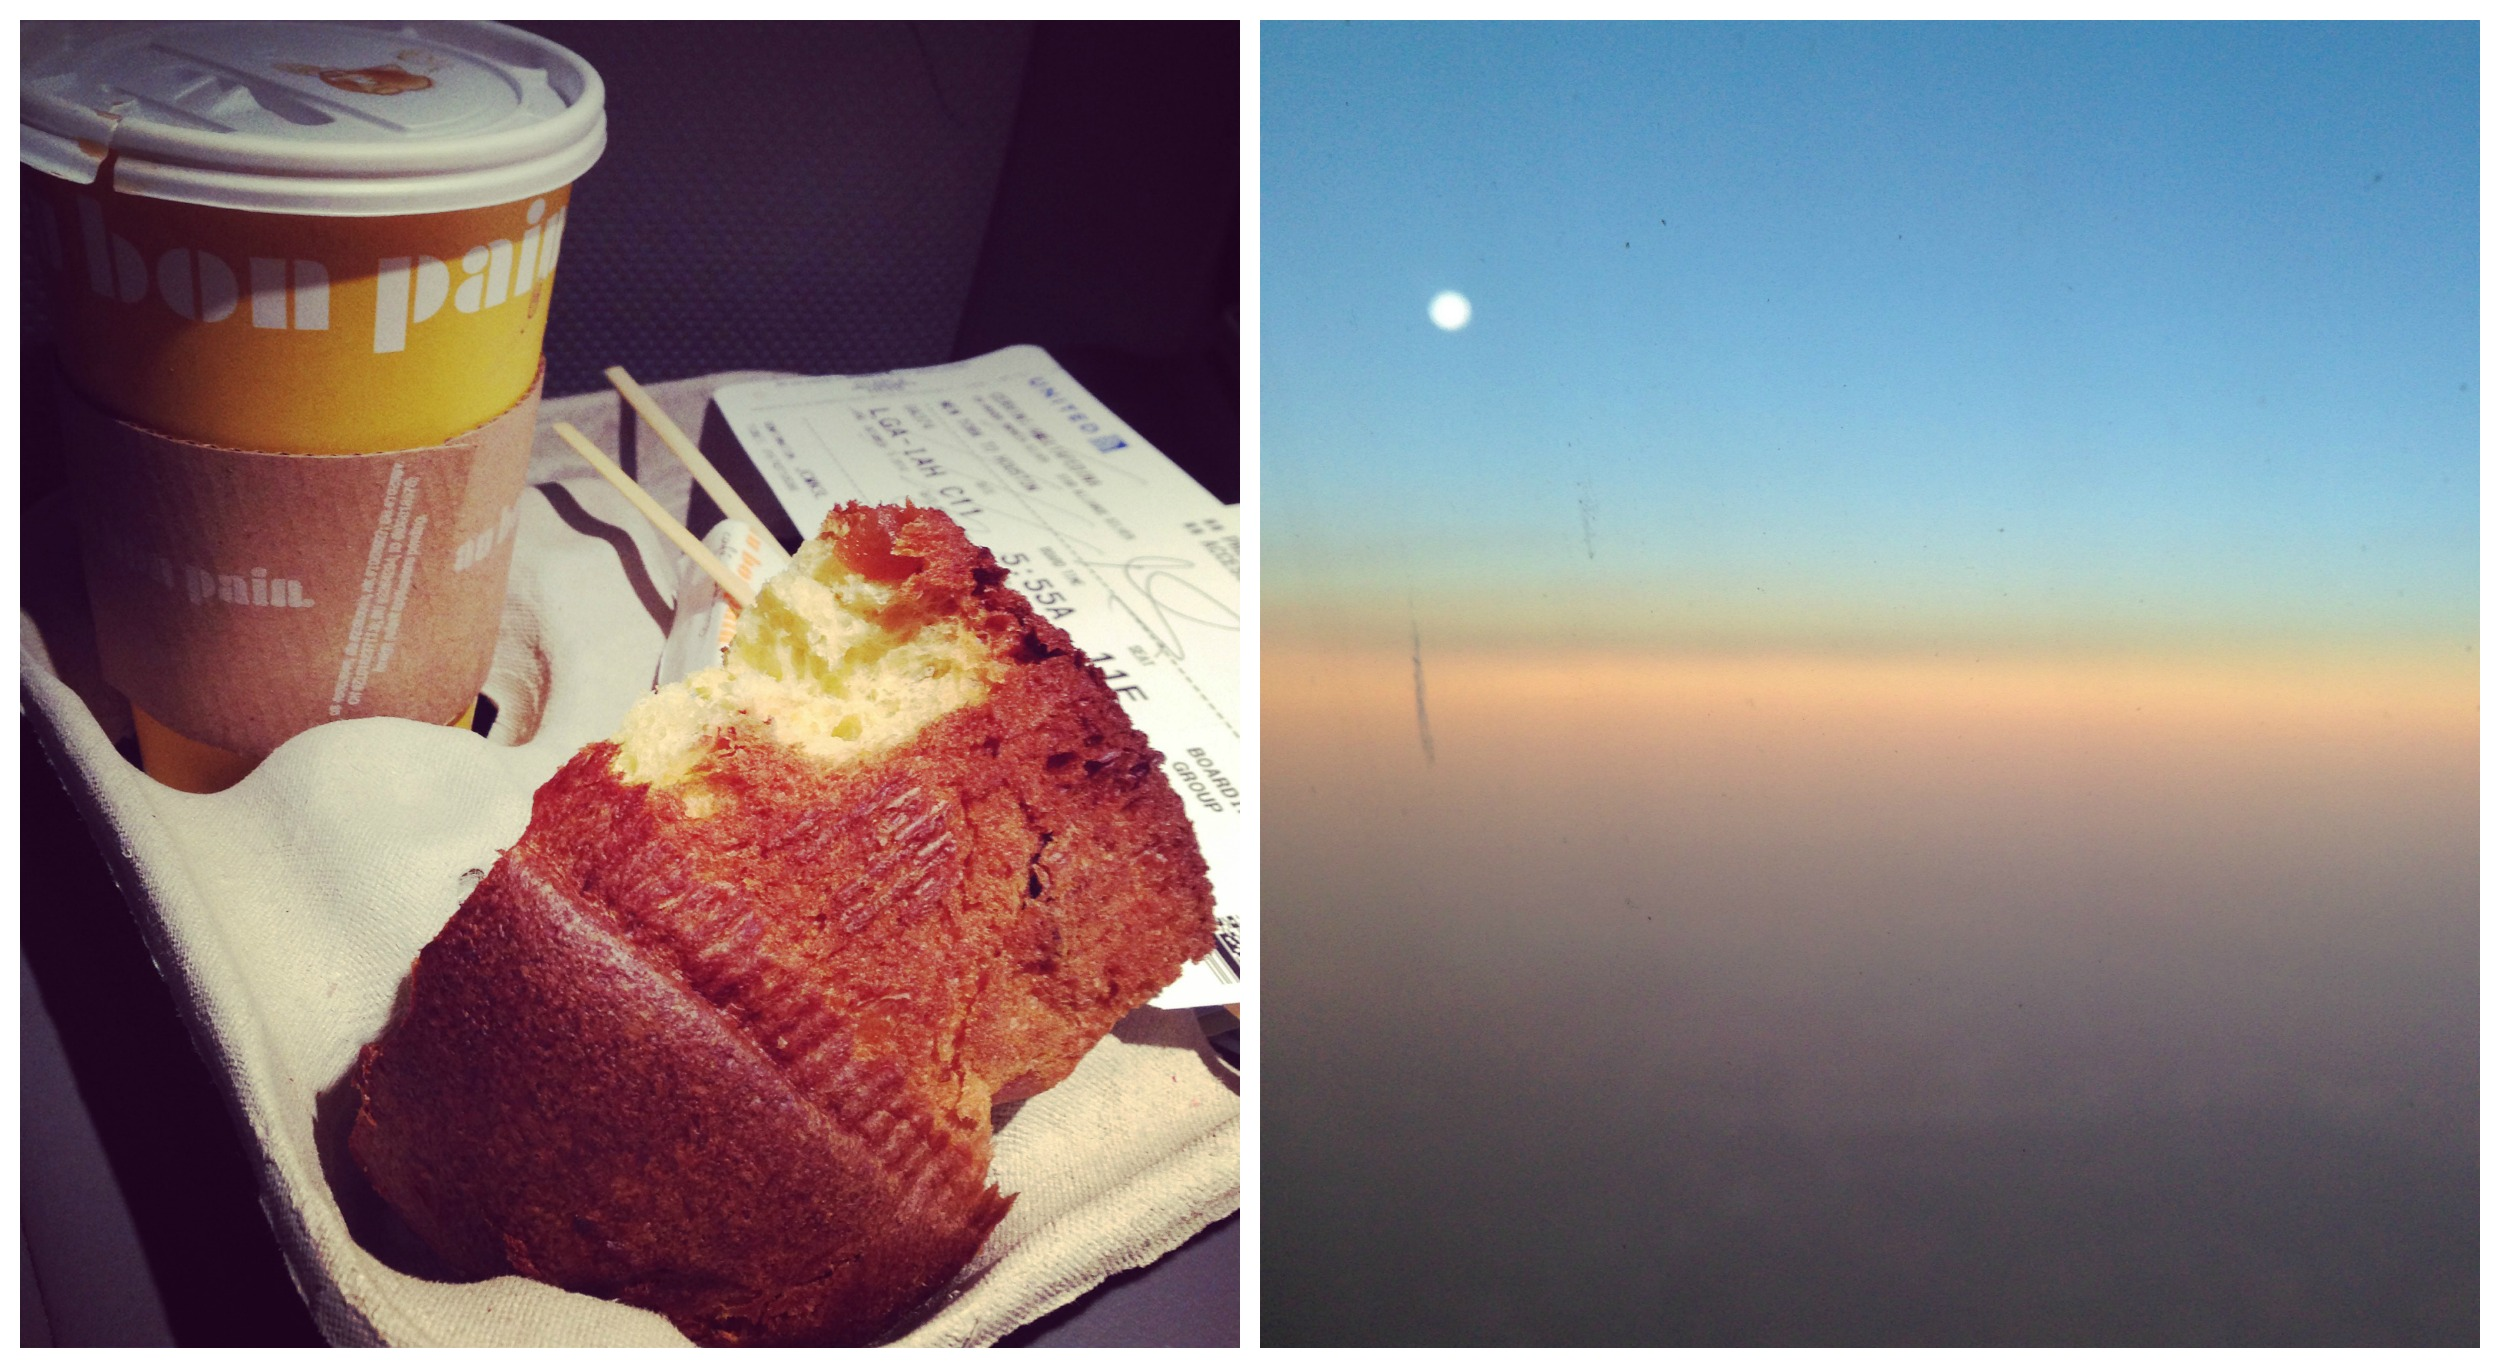 Chocolate and pear panettone (excuse the bite, the birthday girl was hungry), and sunrise from the plane.